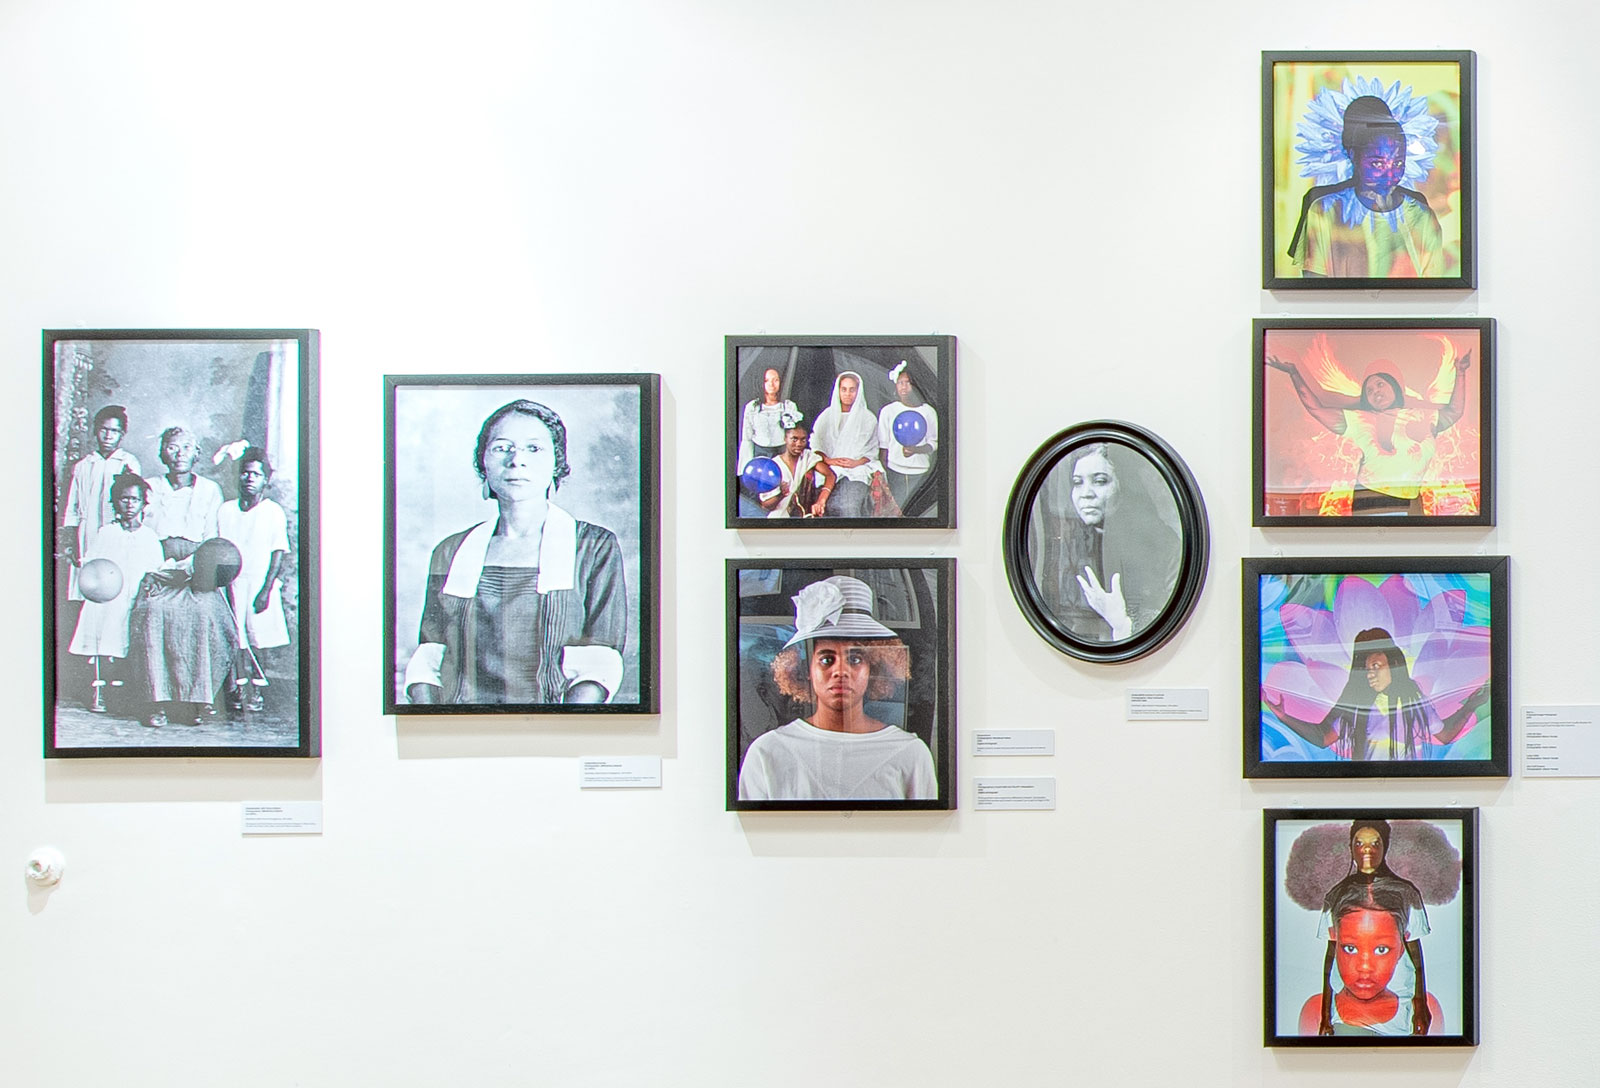 Installation shot of the Femmetography exhibition at the Schomburg Center for Research in Black Culture